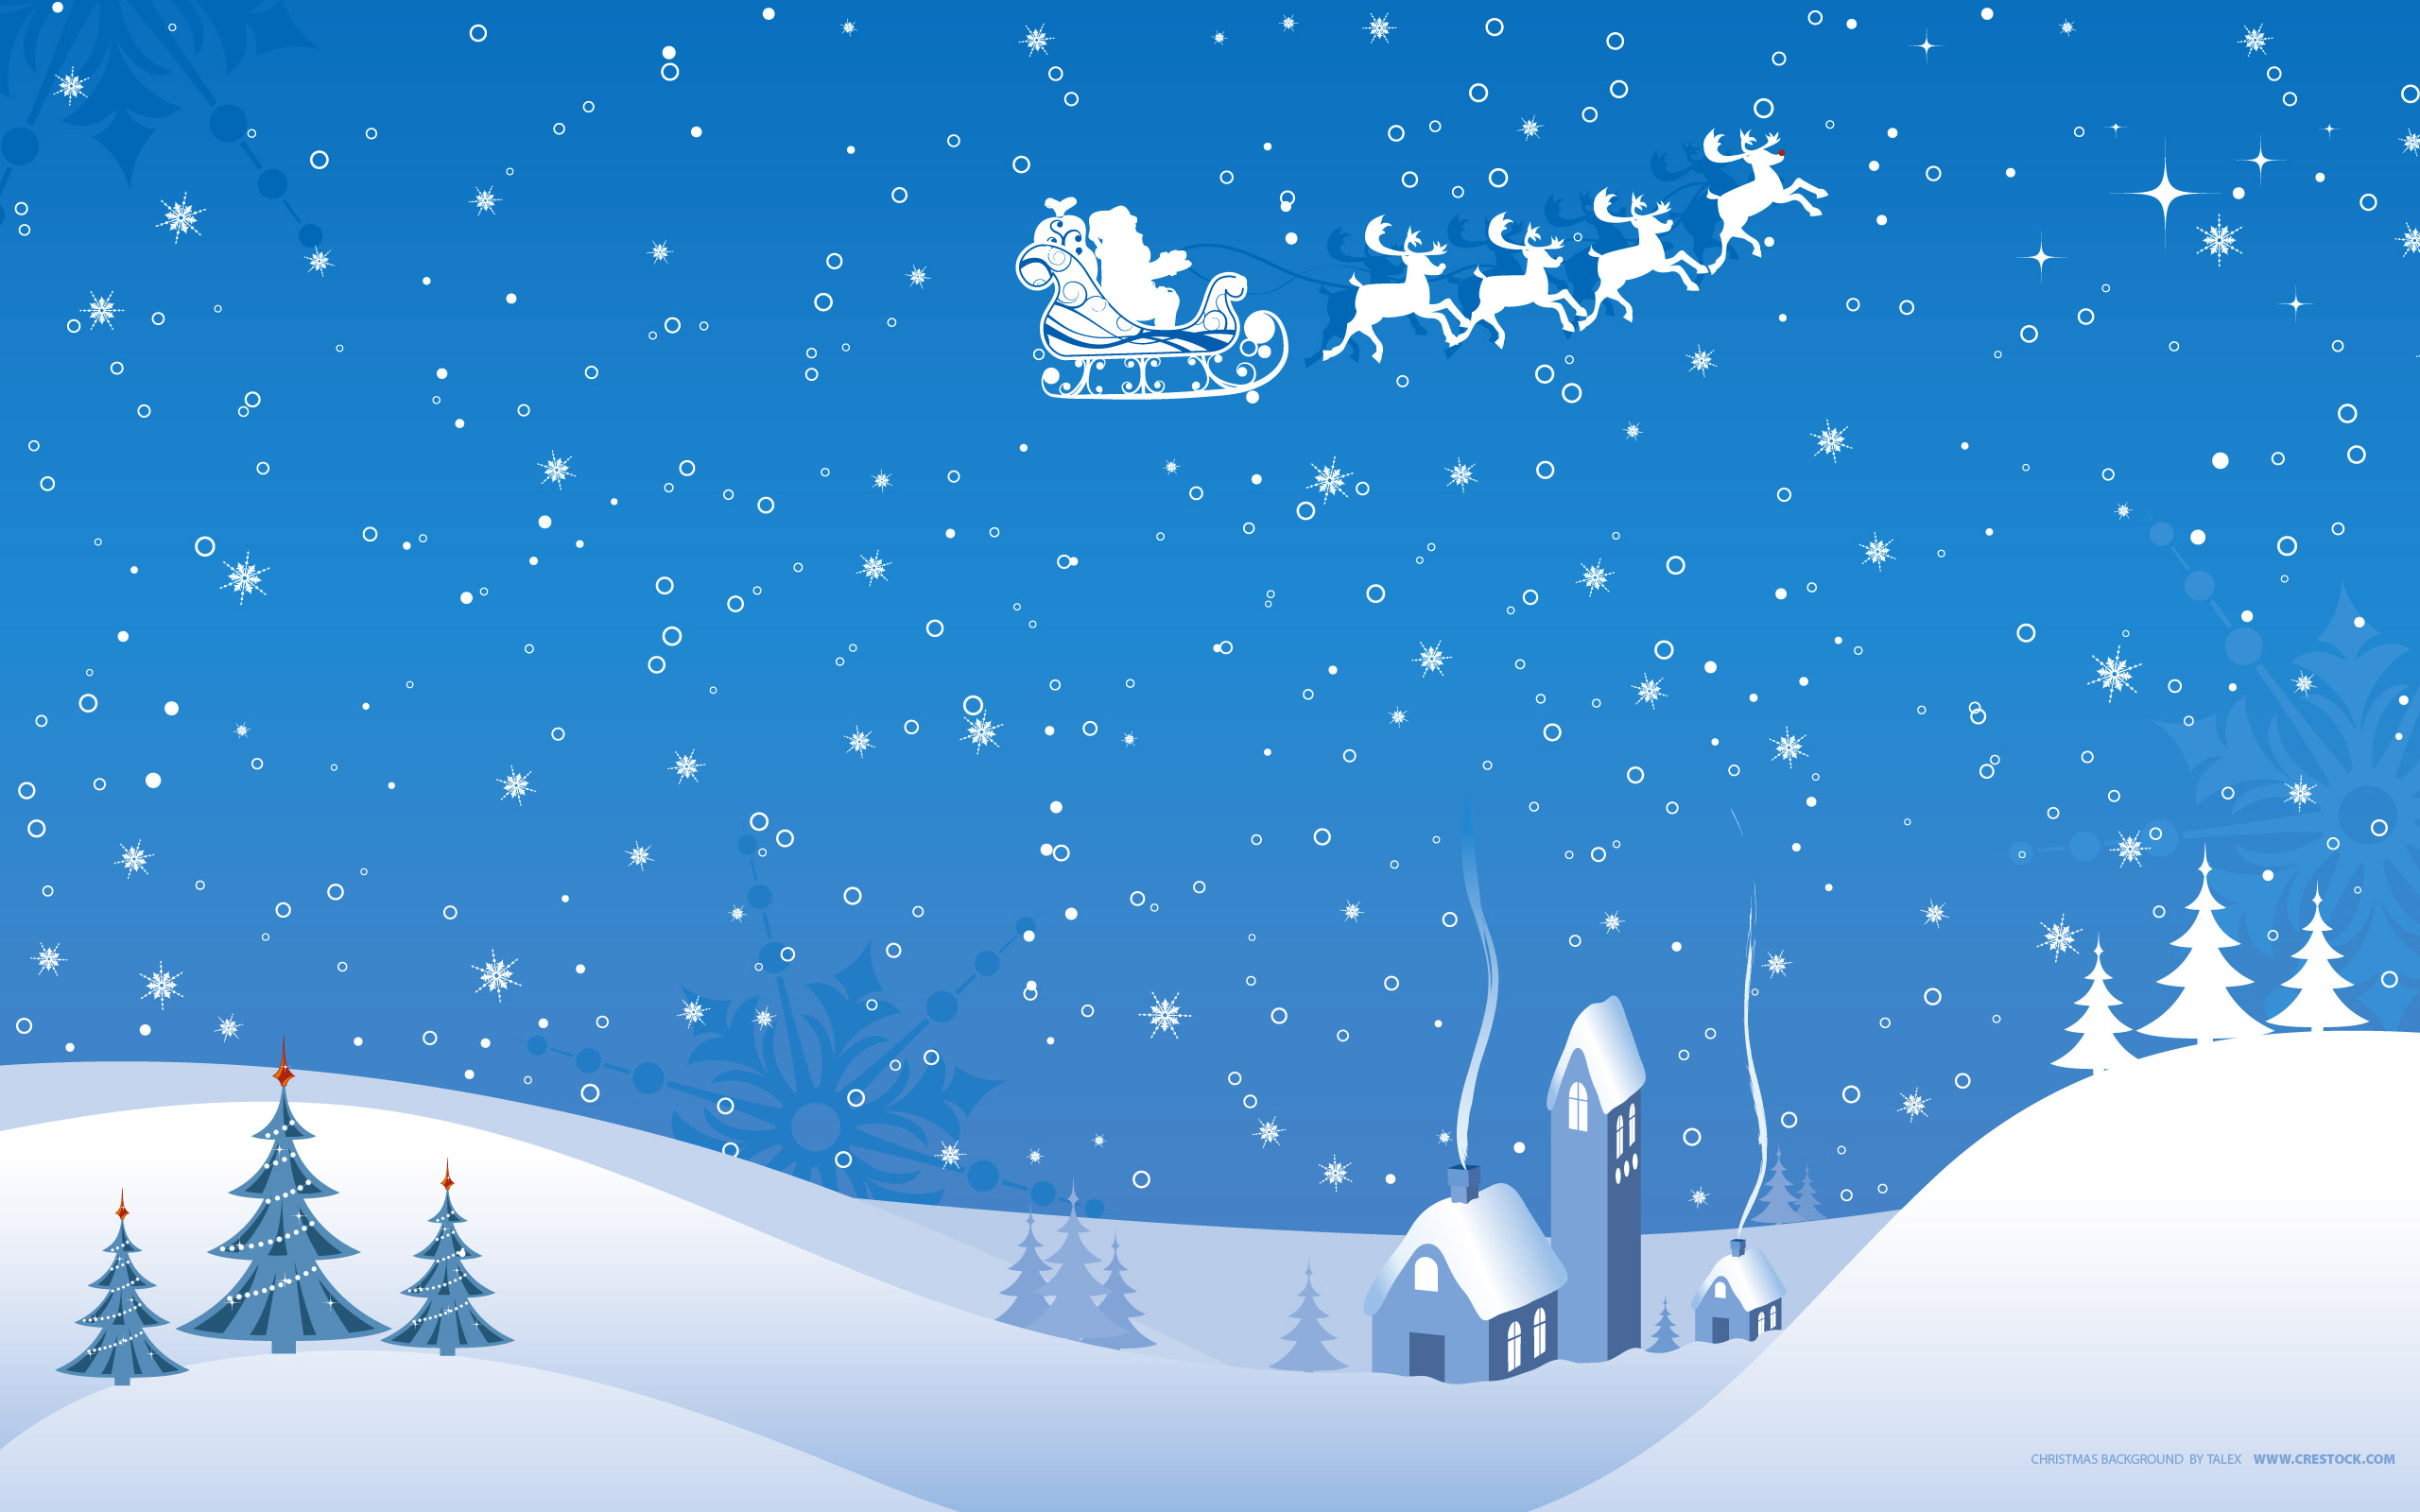 Christmas Backgrounds Download 6957736 2560x1600